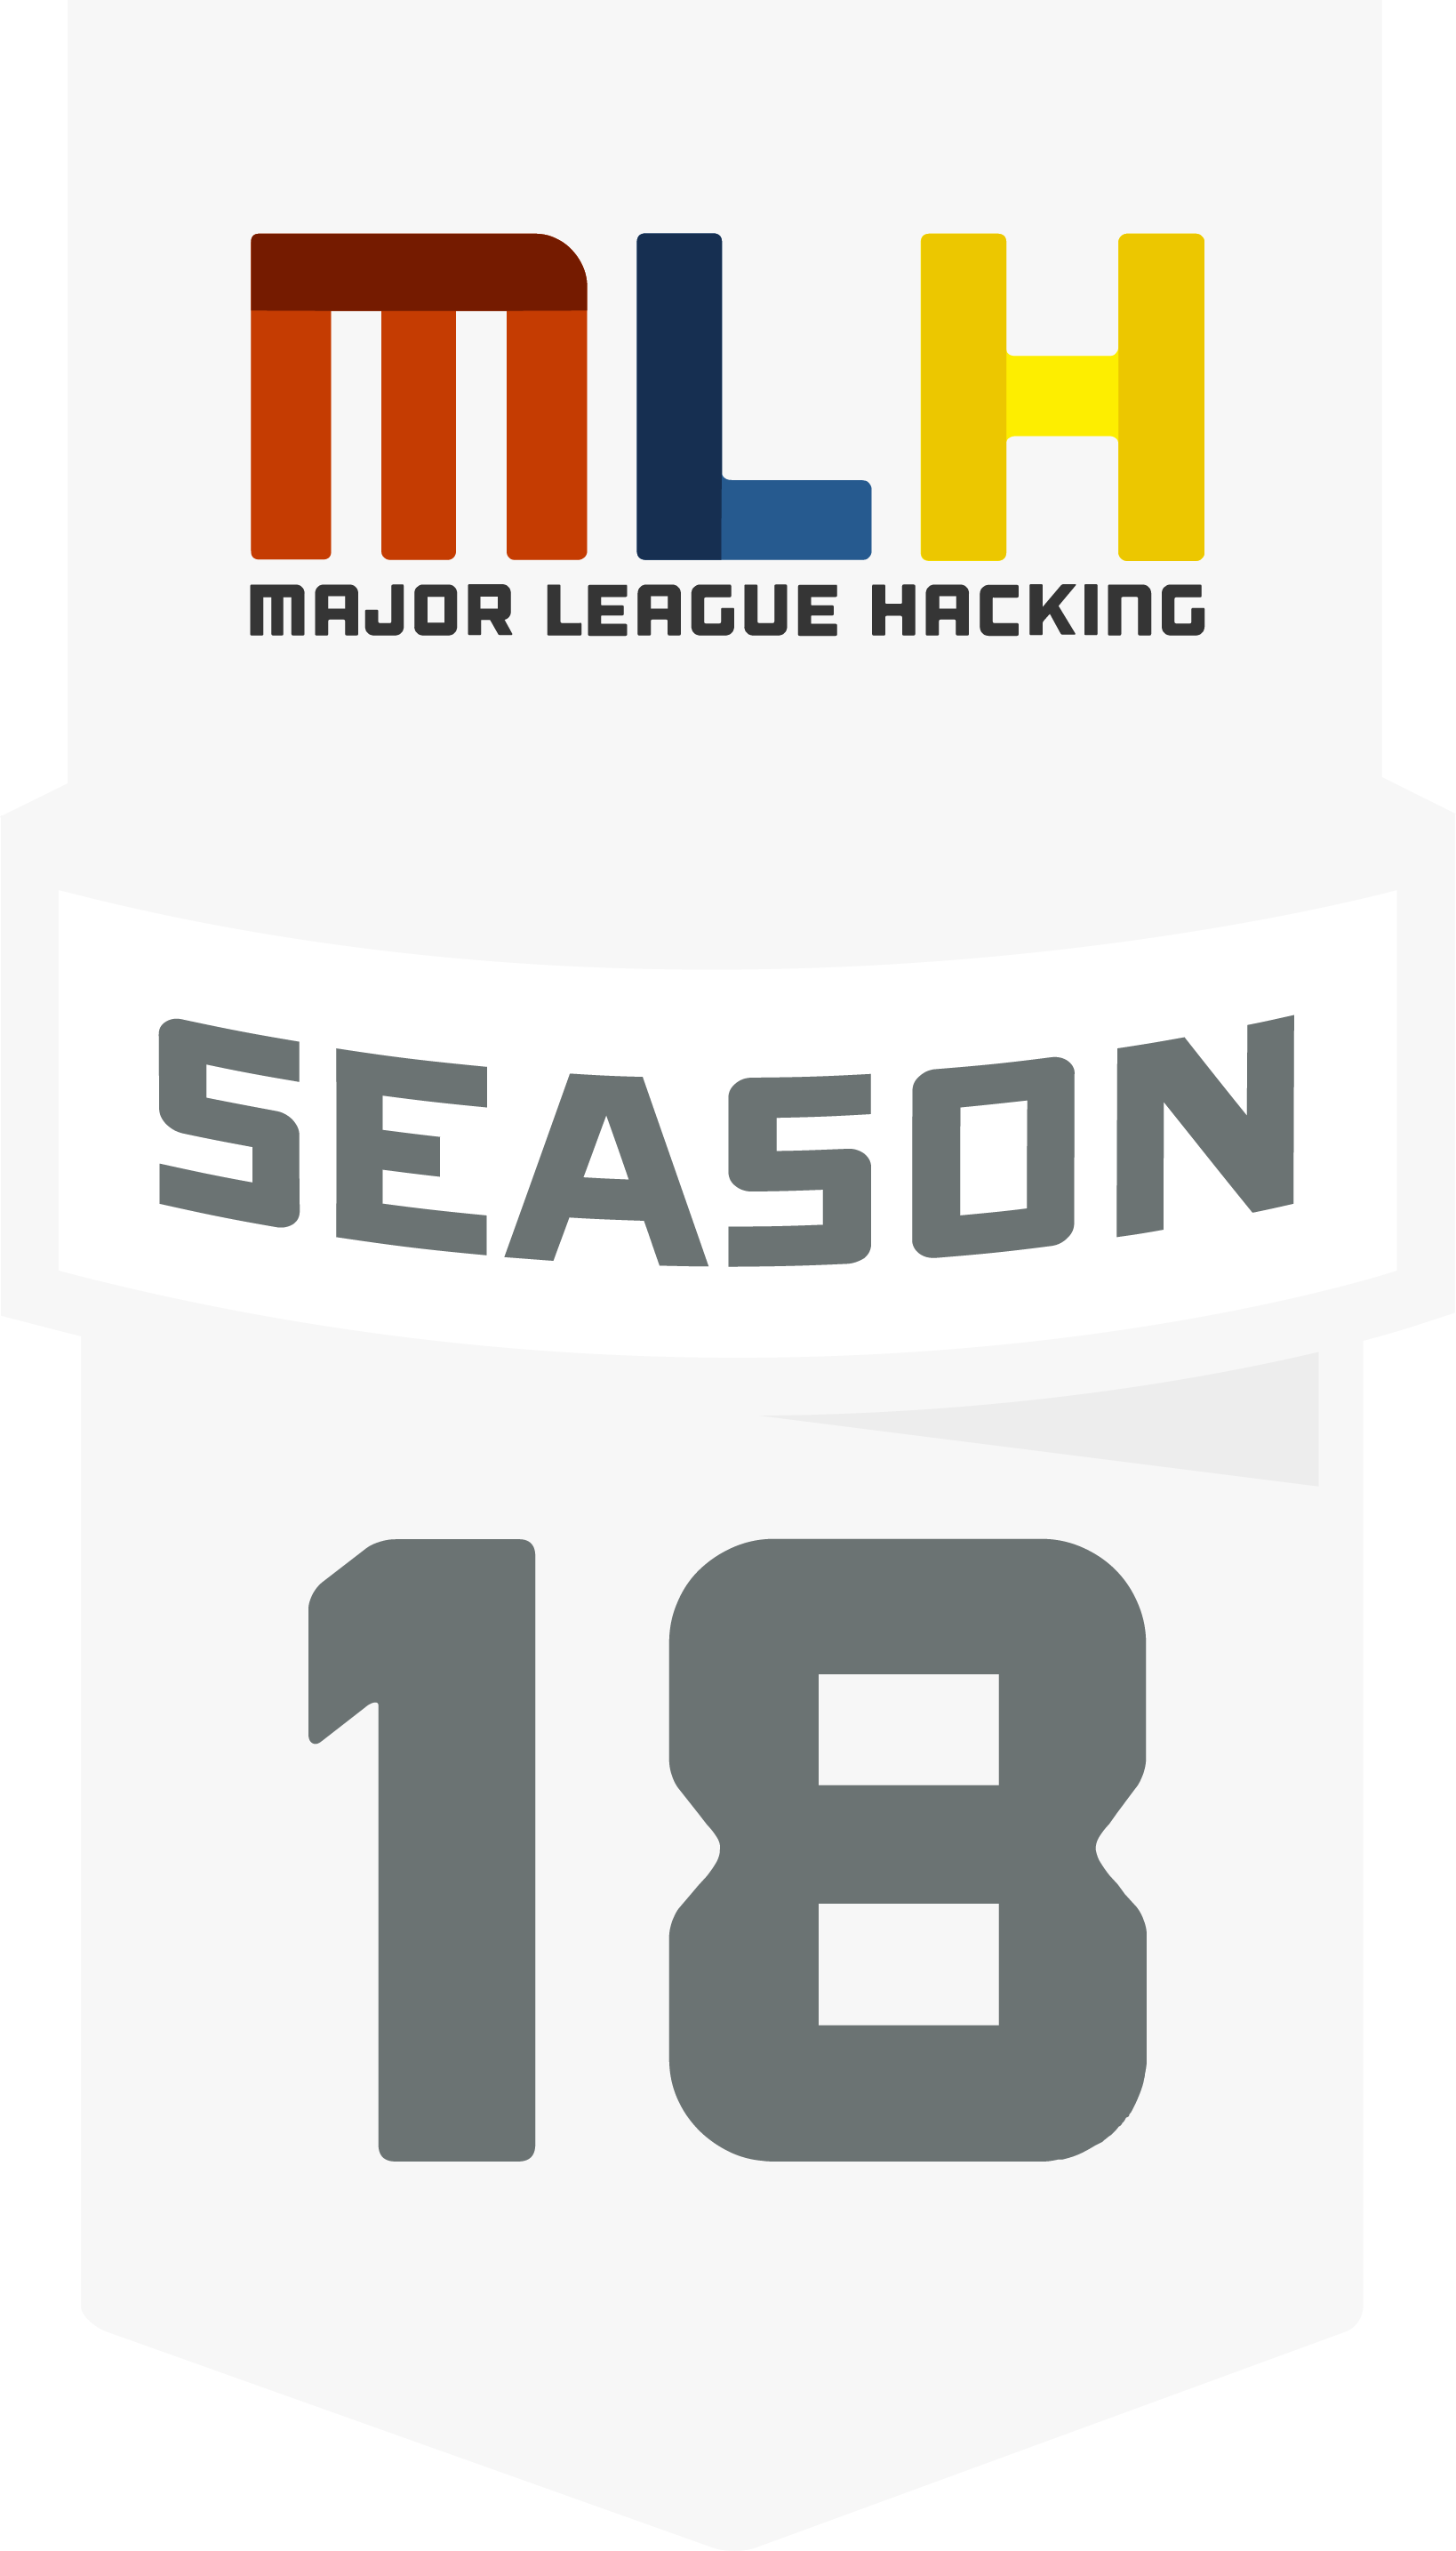 Major League Hacking 2018 Hackathon Season